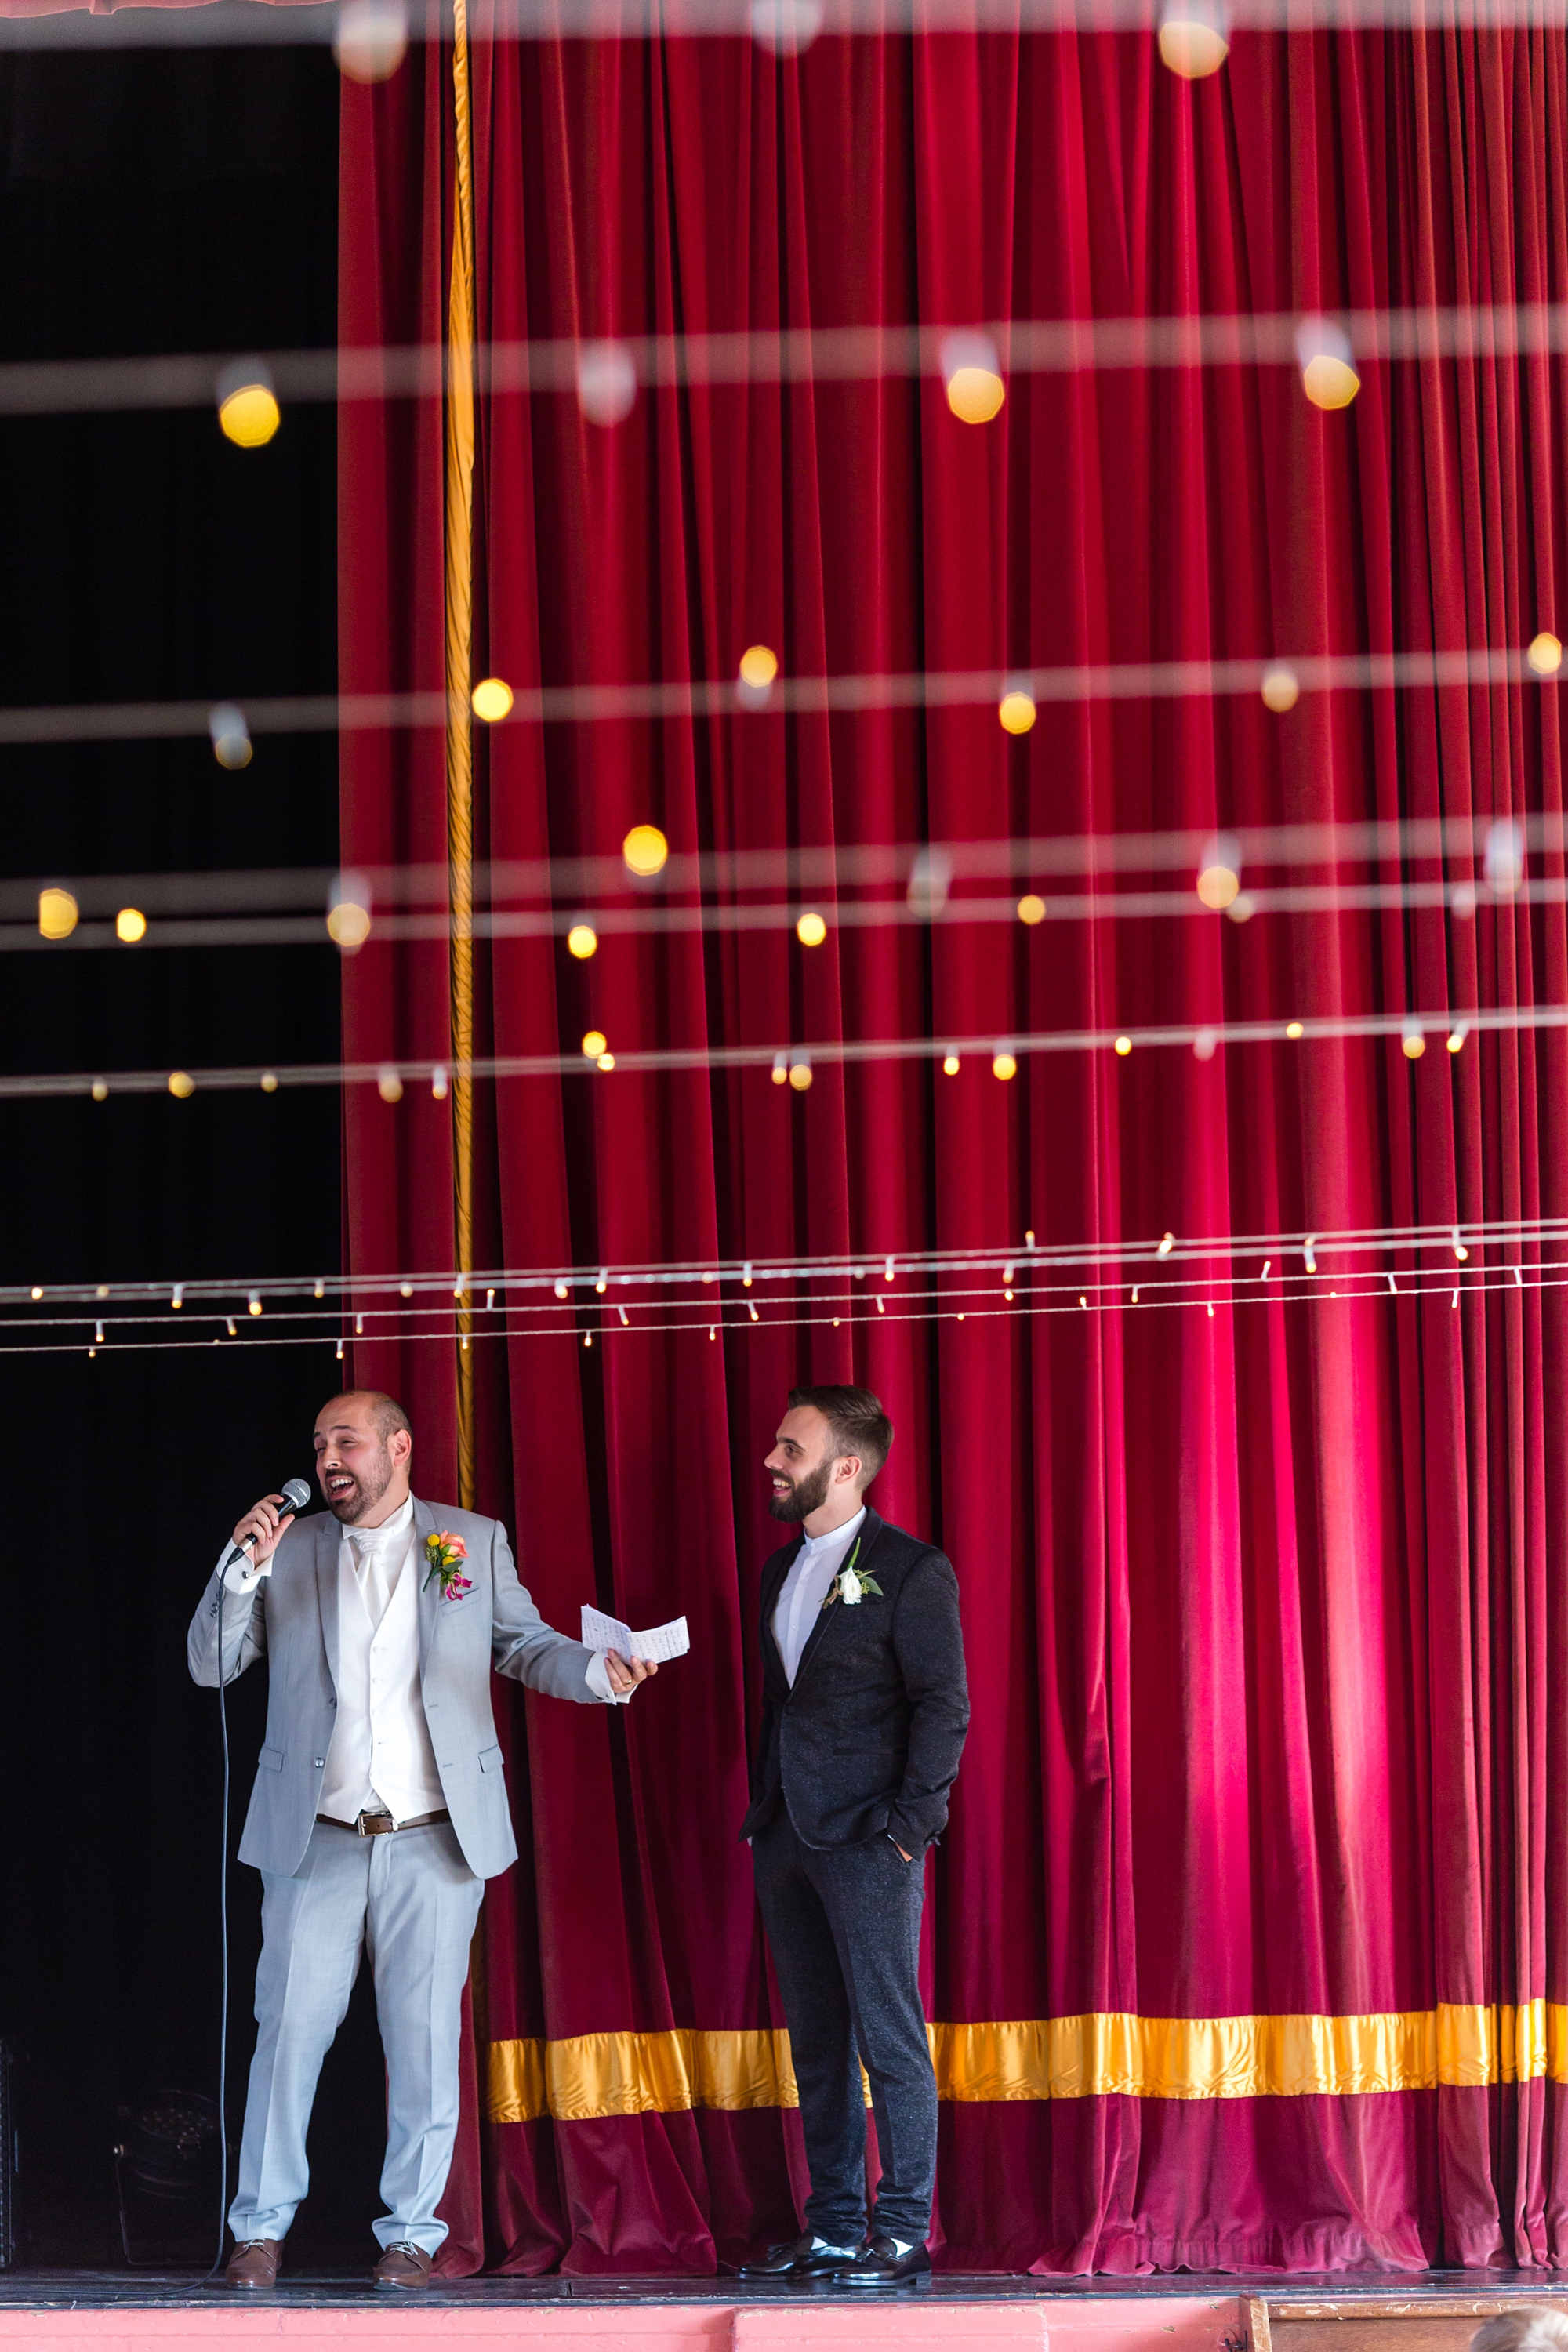 Grooms giving speeches in front of red curtain A fun Yorkshire Wedding